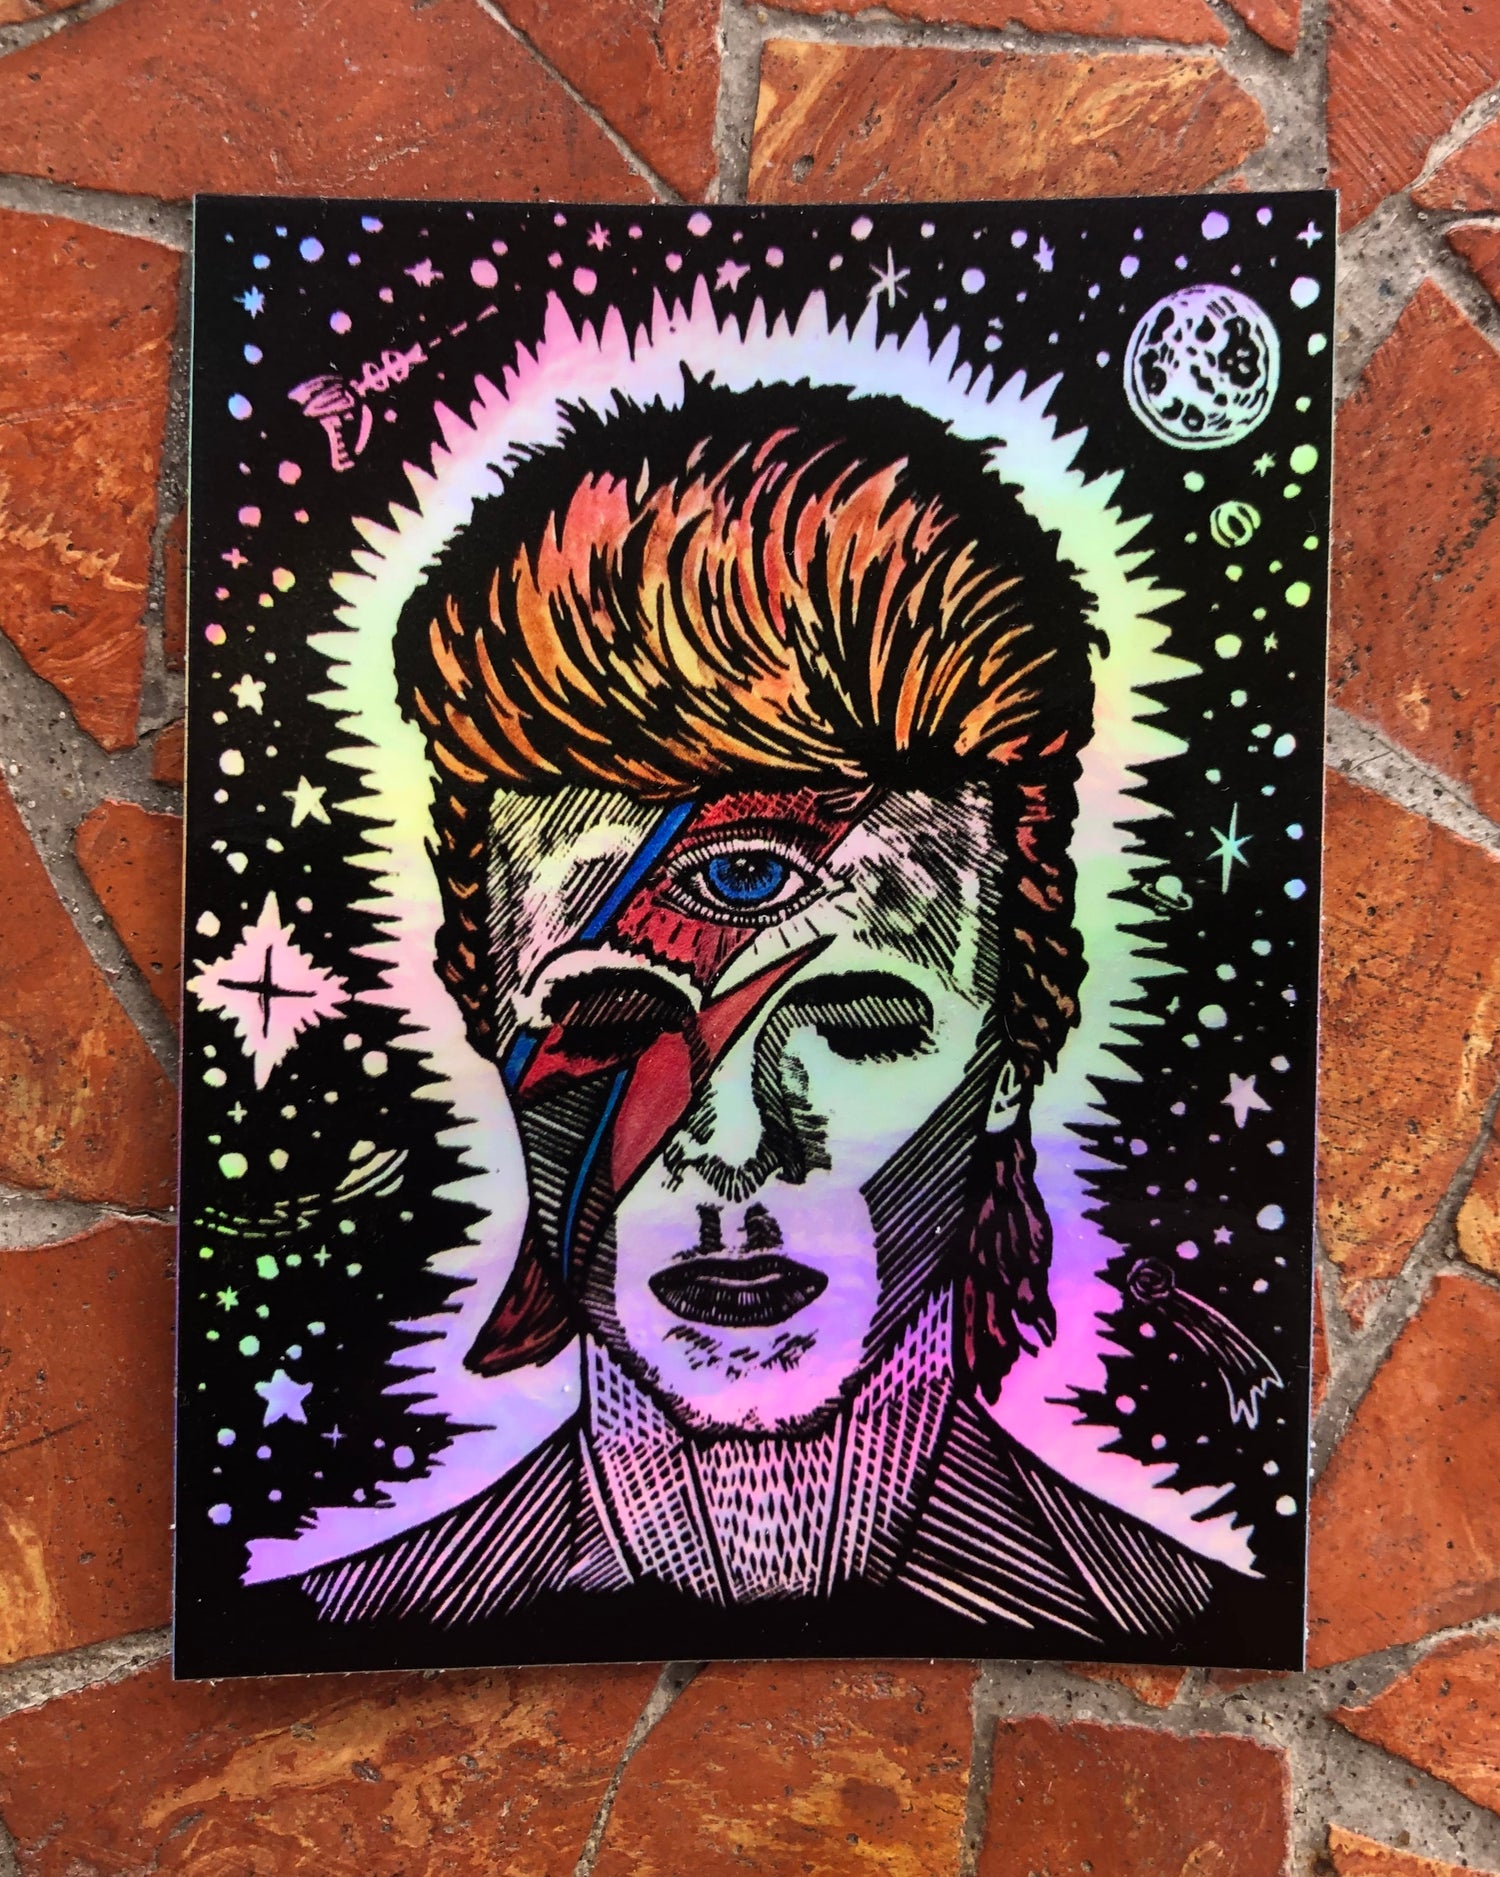 Image of Holographic Bowie stickers